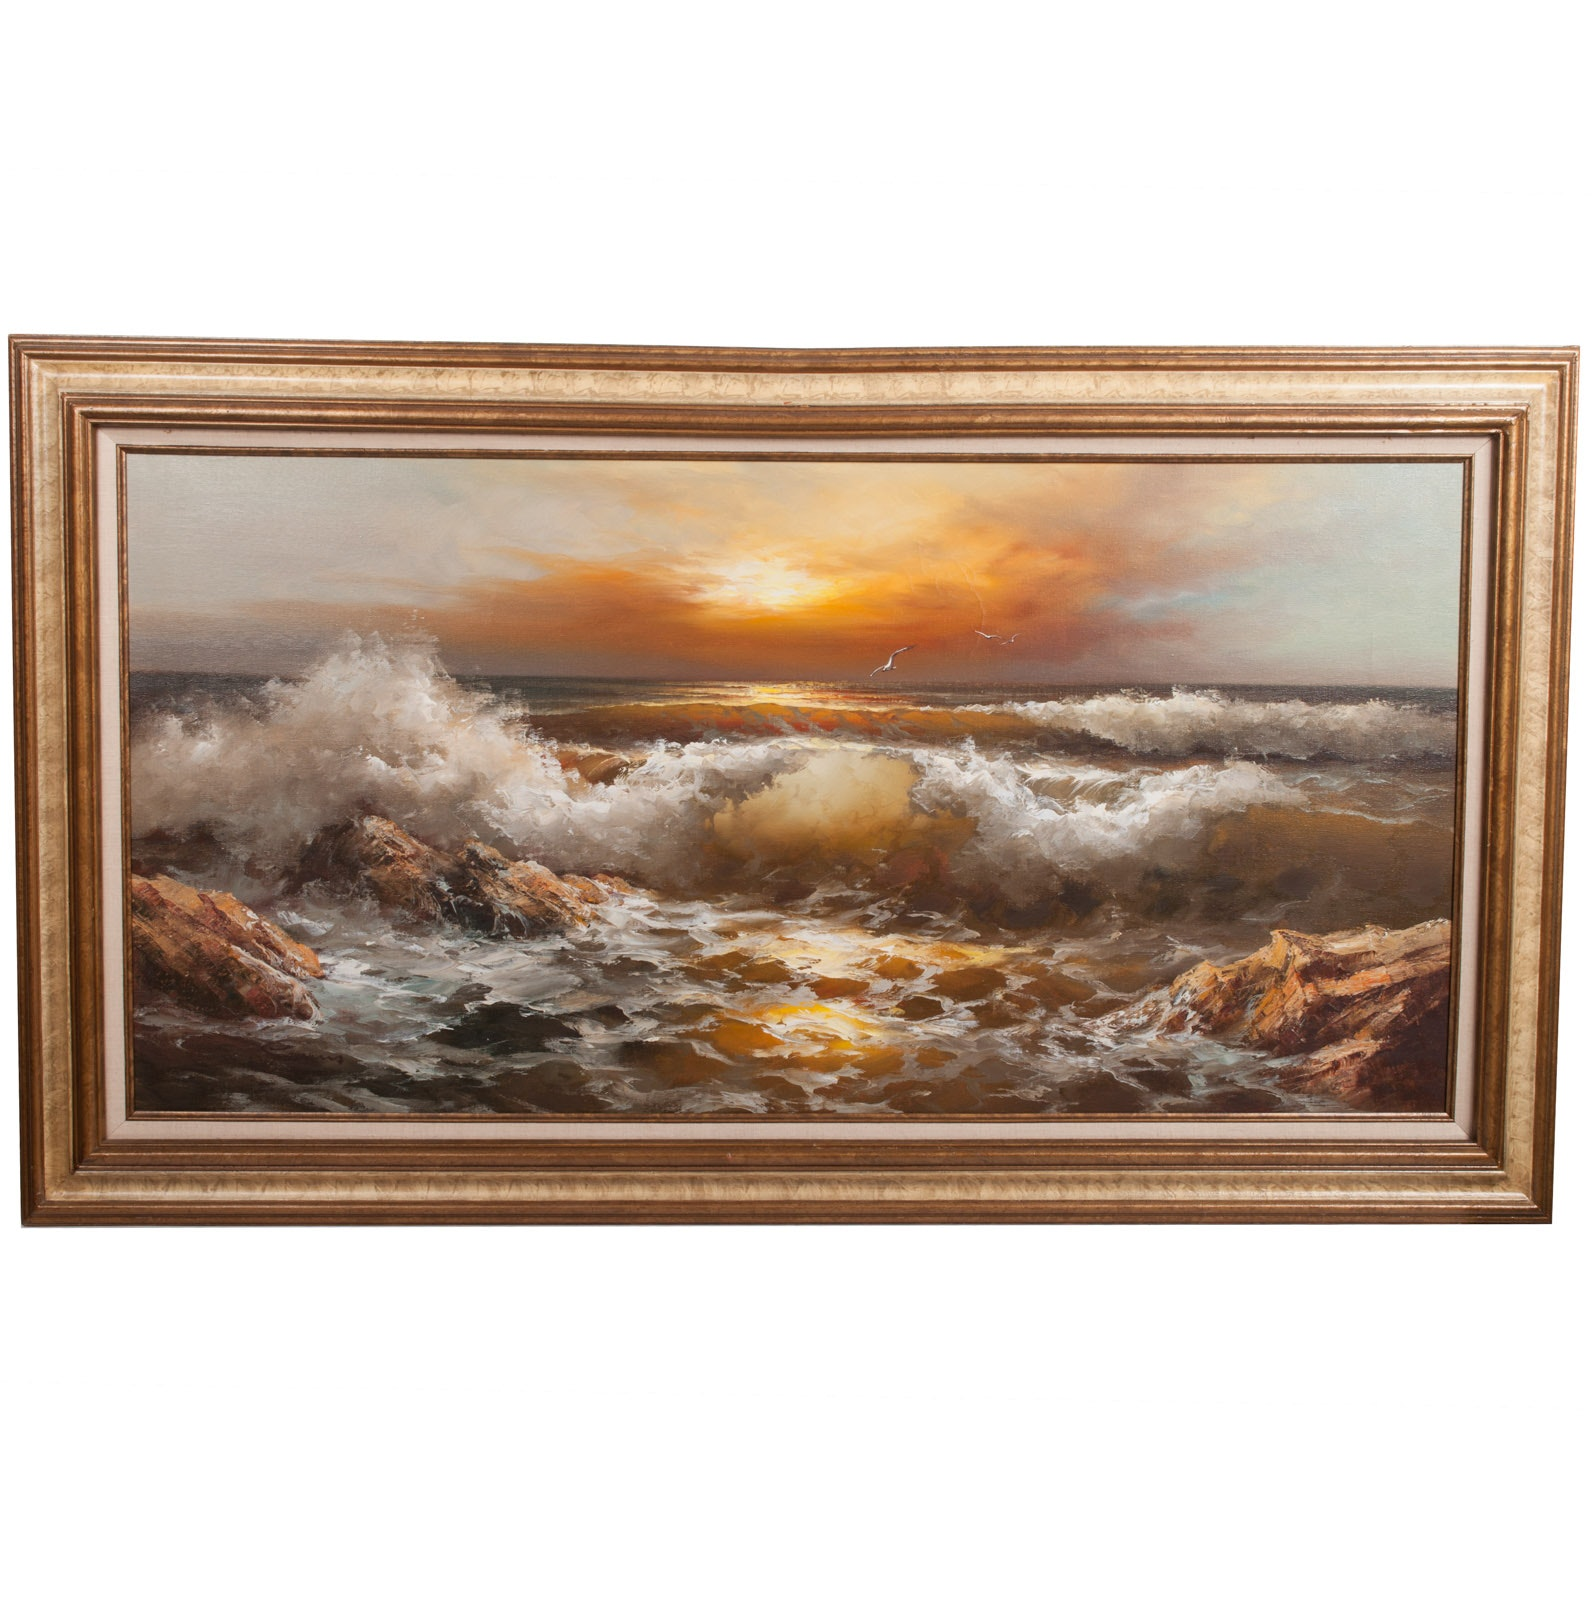 Substantial Original Oil Painting on Canvas of Seascape at Sunset